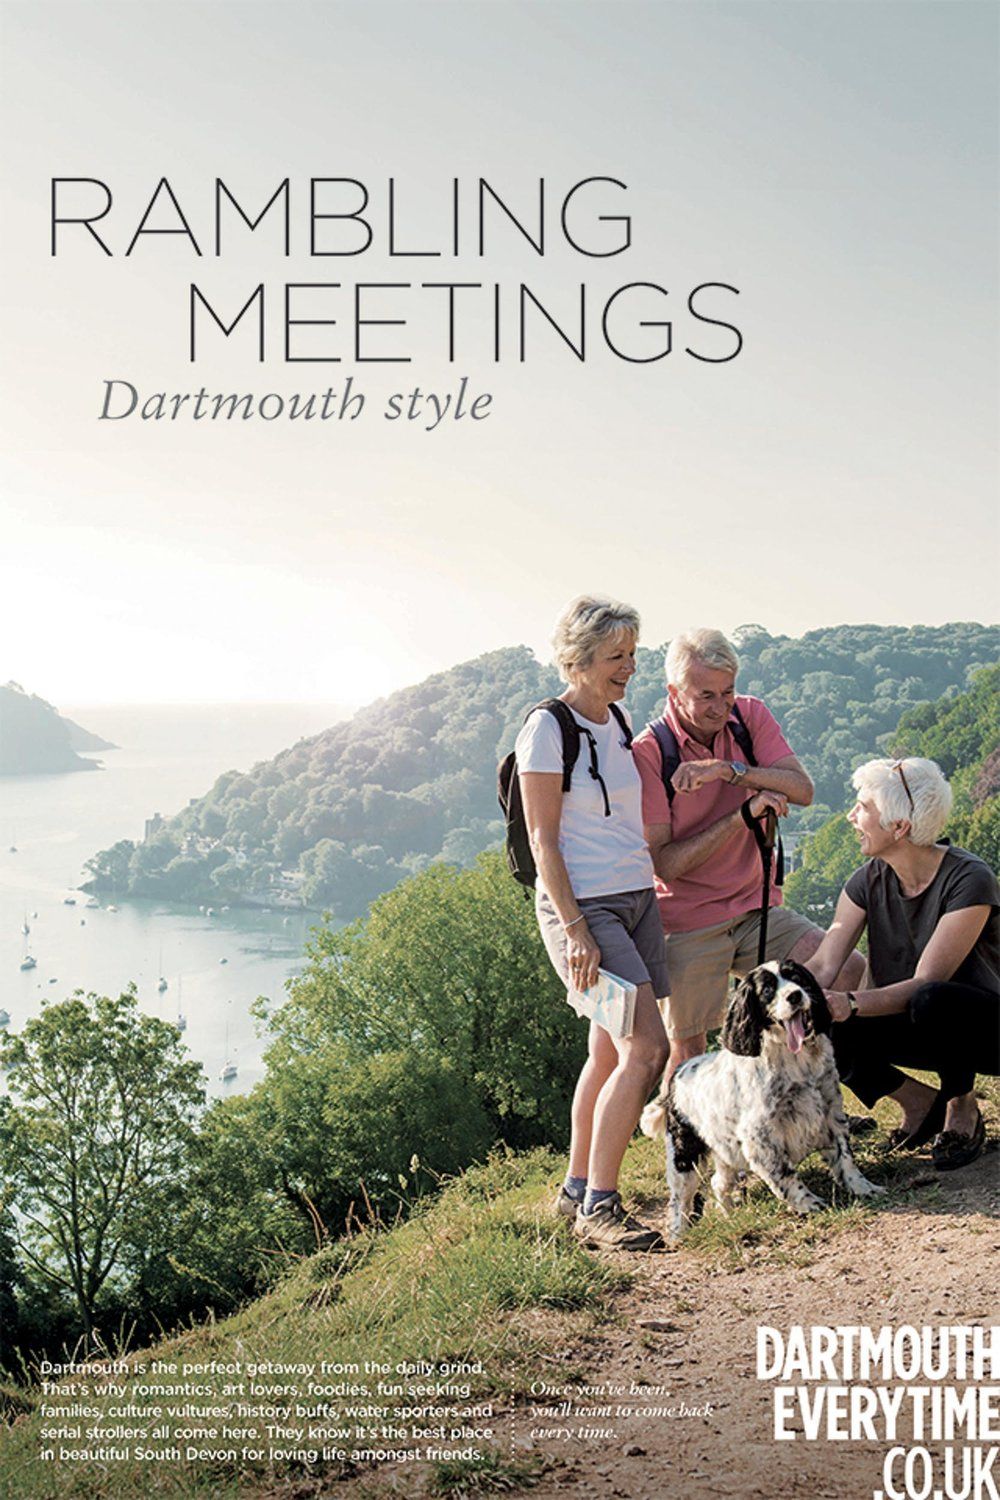 Dartmouth+4+Sheet+Rambling+Meetings+AW_low+res.jpg